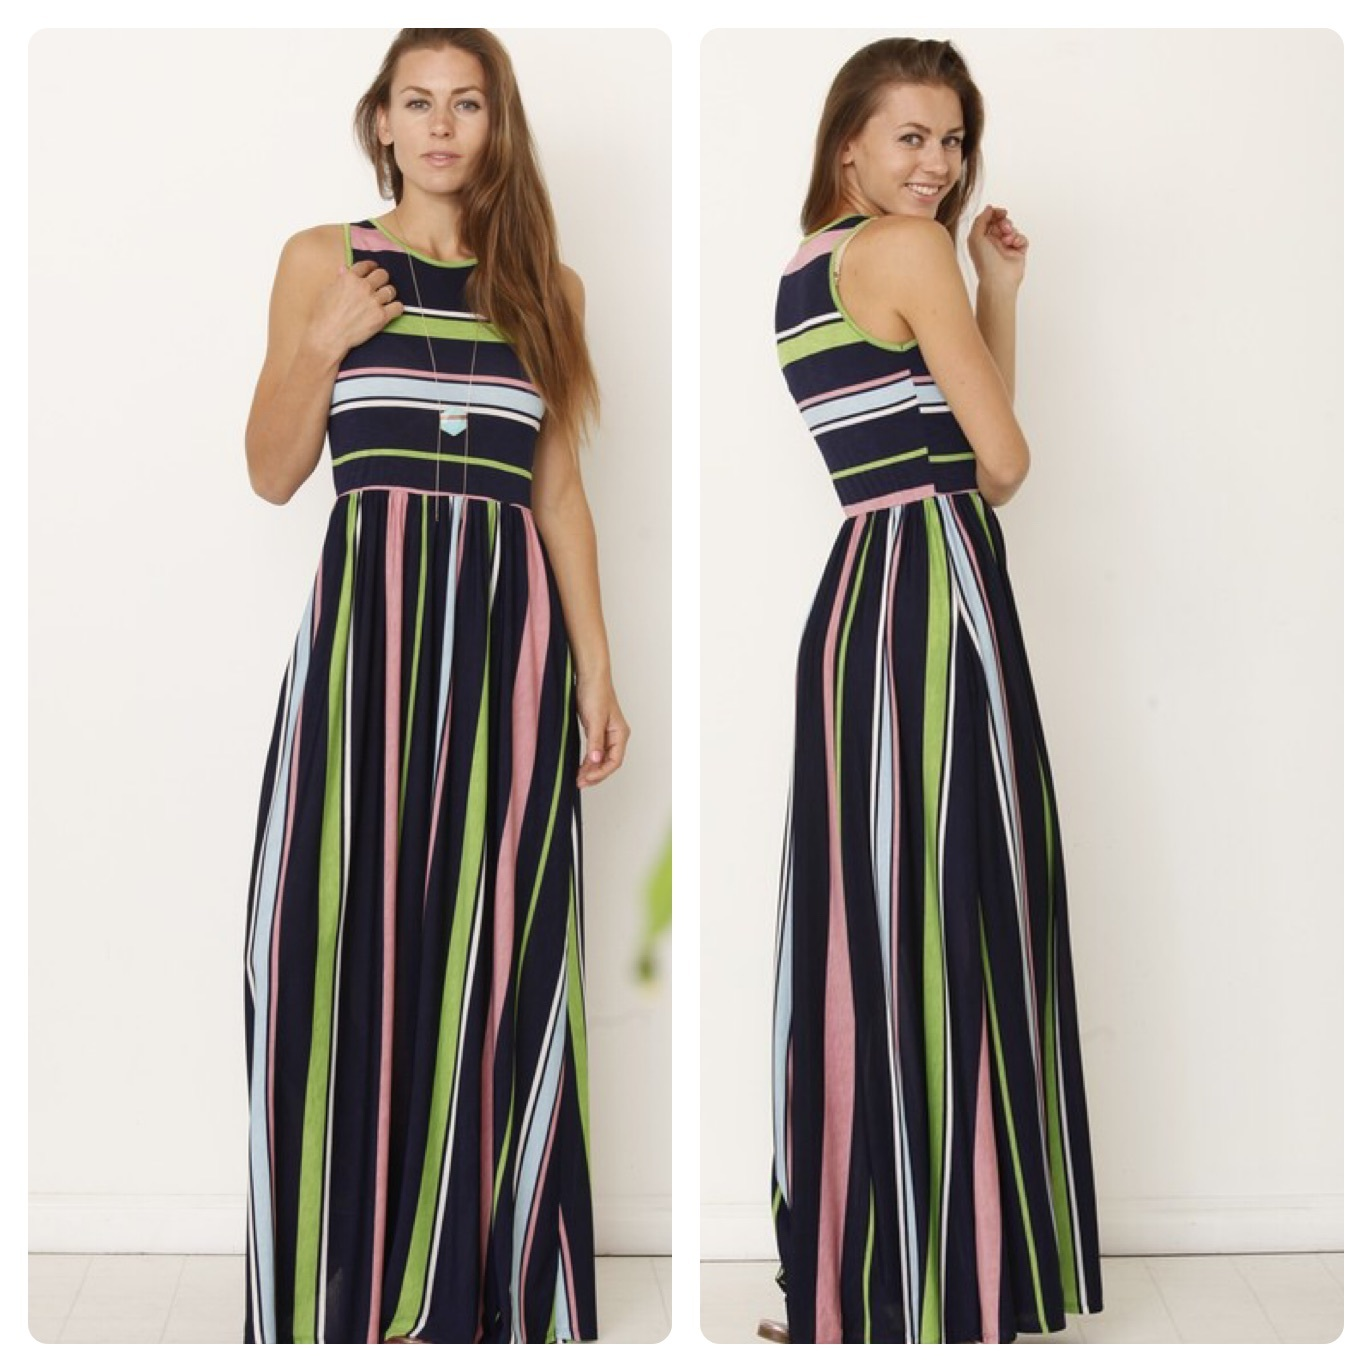 GREEN STRIPE MAXI   $40